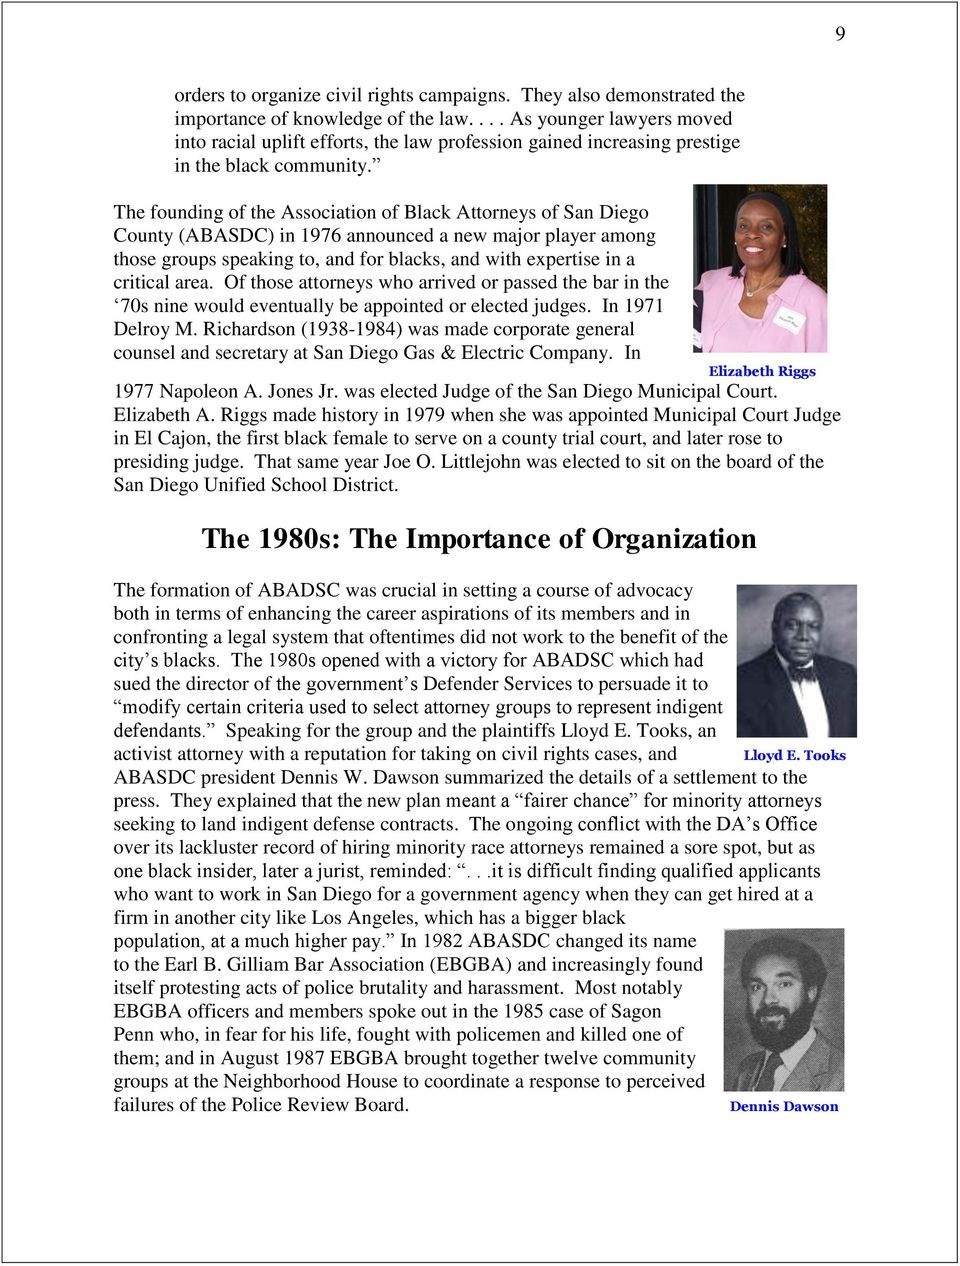 The founding of the Association of Black Attorneys of San Diego County (ABASDC) in 1976 announced a new major player among those groups speaking to, and for blacks, and with expertise in a critical